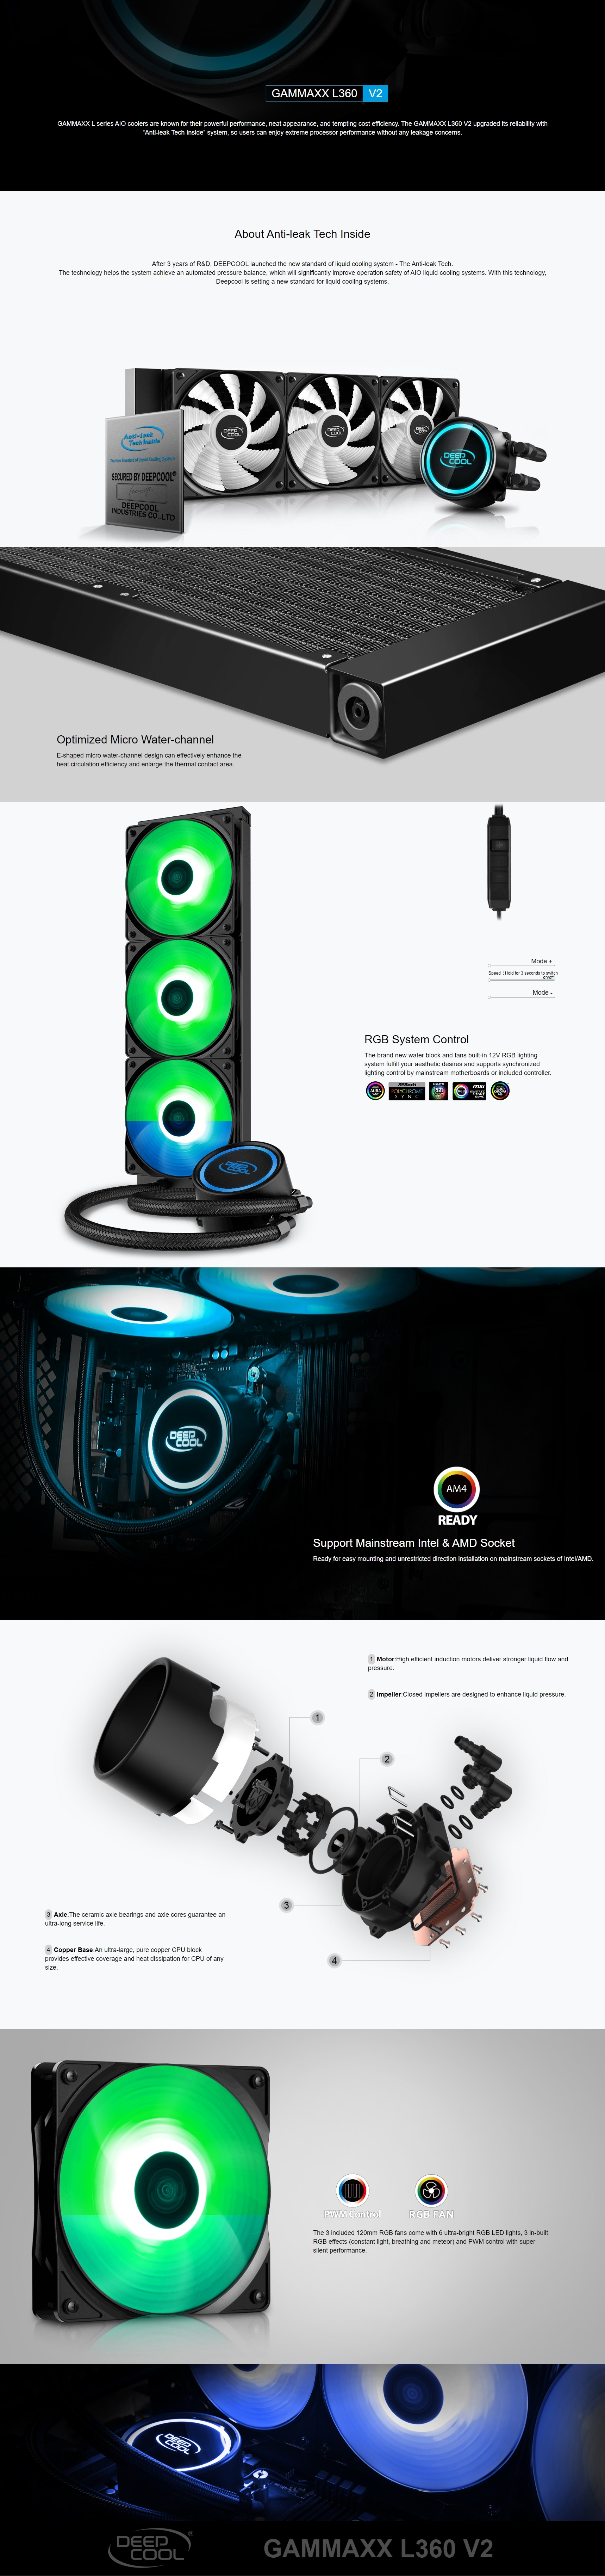 A large marketing image providing additional information about the product Deepcool GAMMAXX L360 V2 RGB AIO Liquid CPU Cooler - Additional alt info not provided